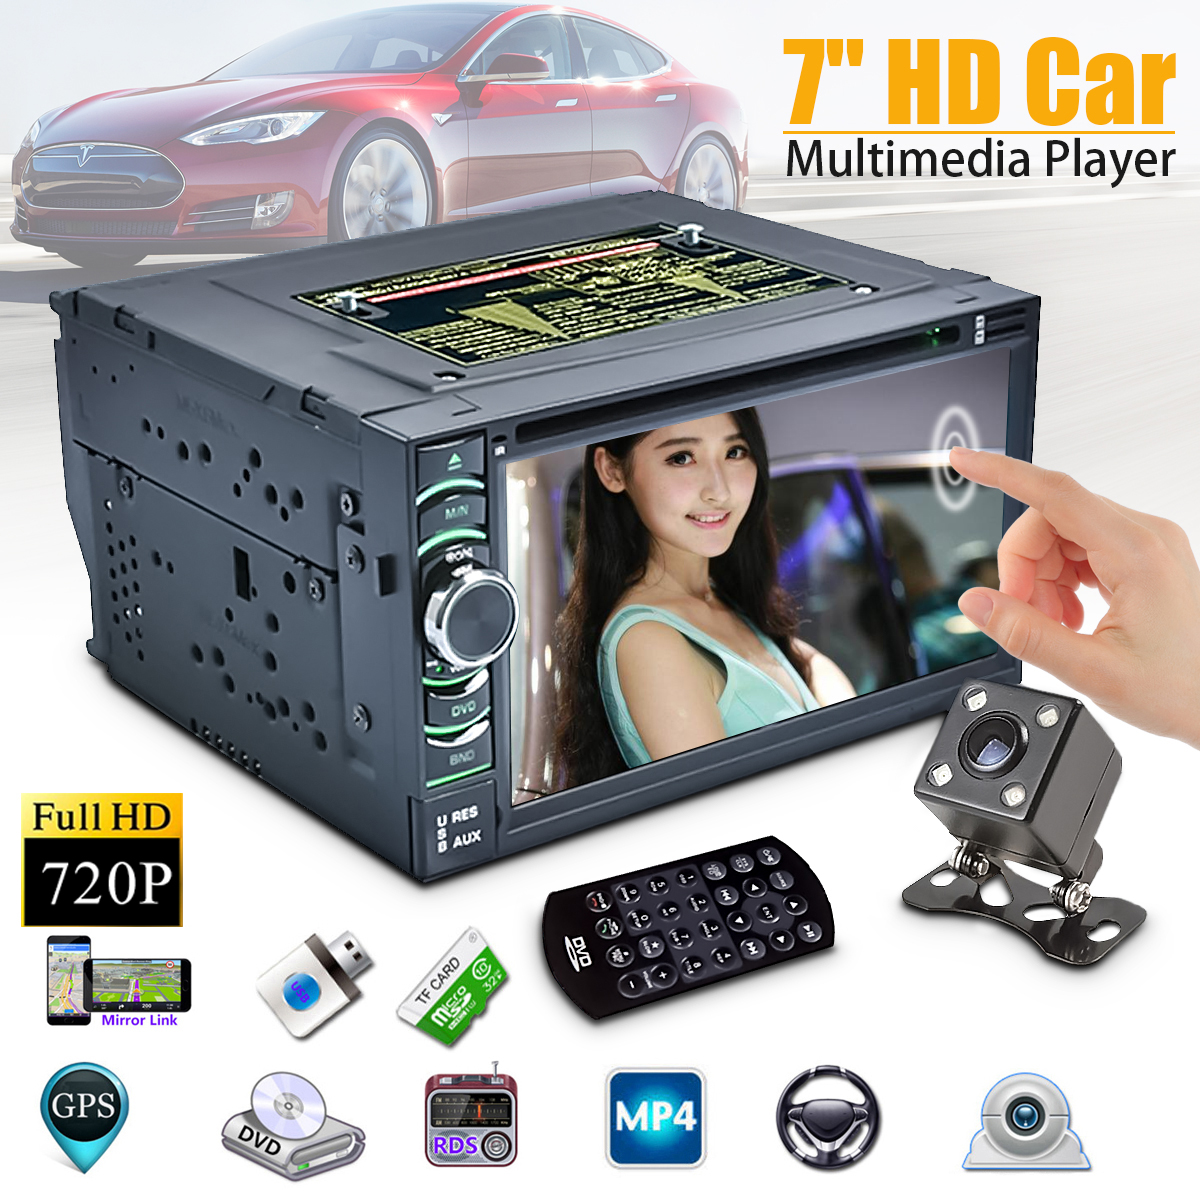 "Full HD 720P 7"" 4 Core Android 6.0 Car DVD Player GPS Rec..."